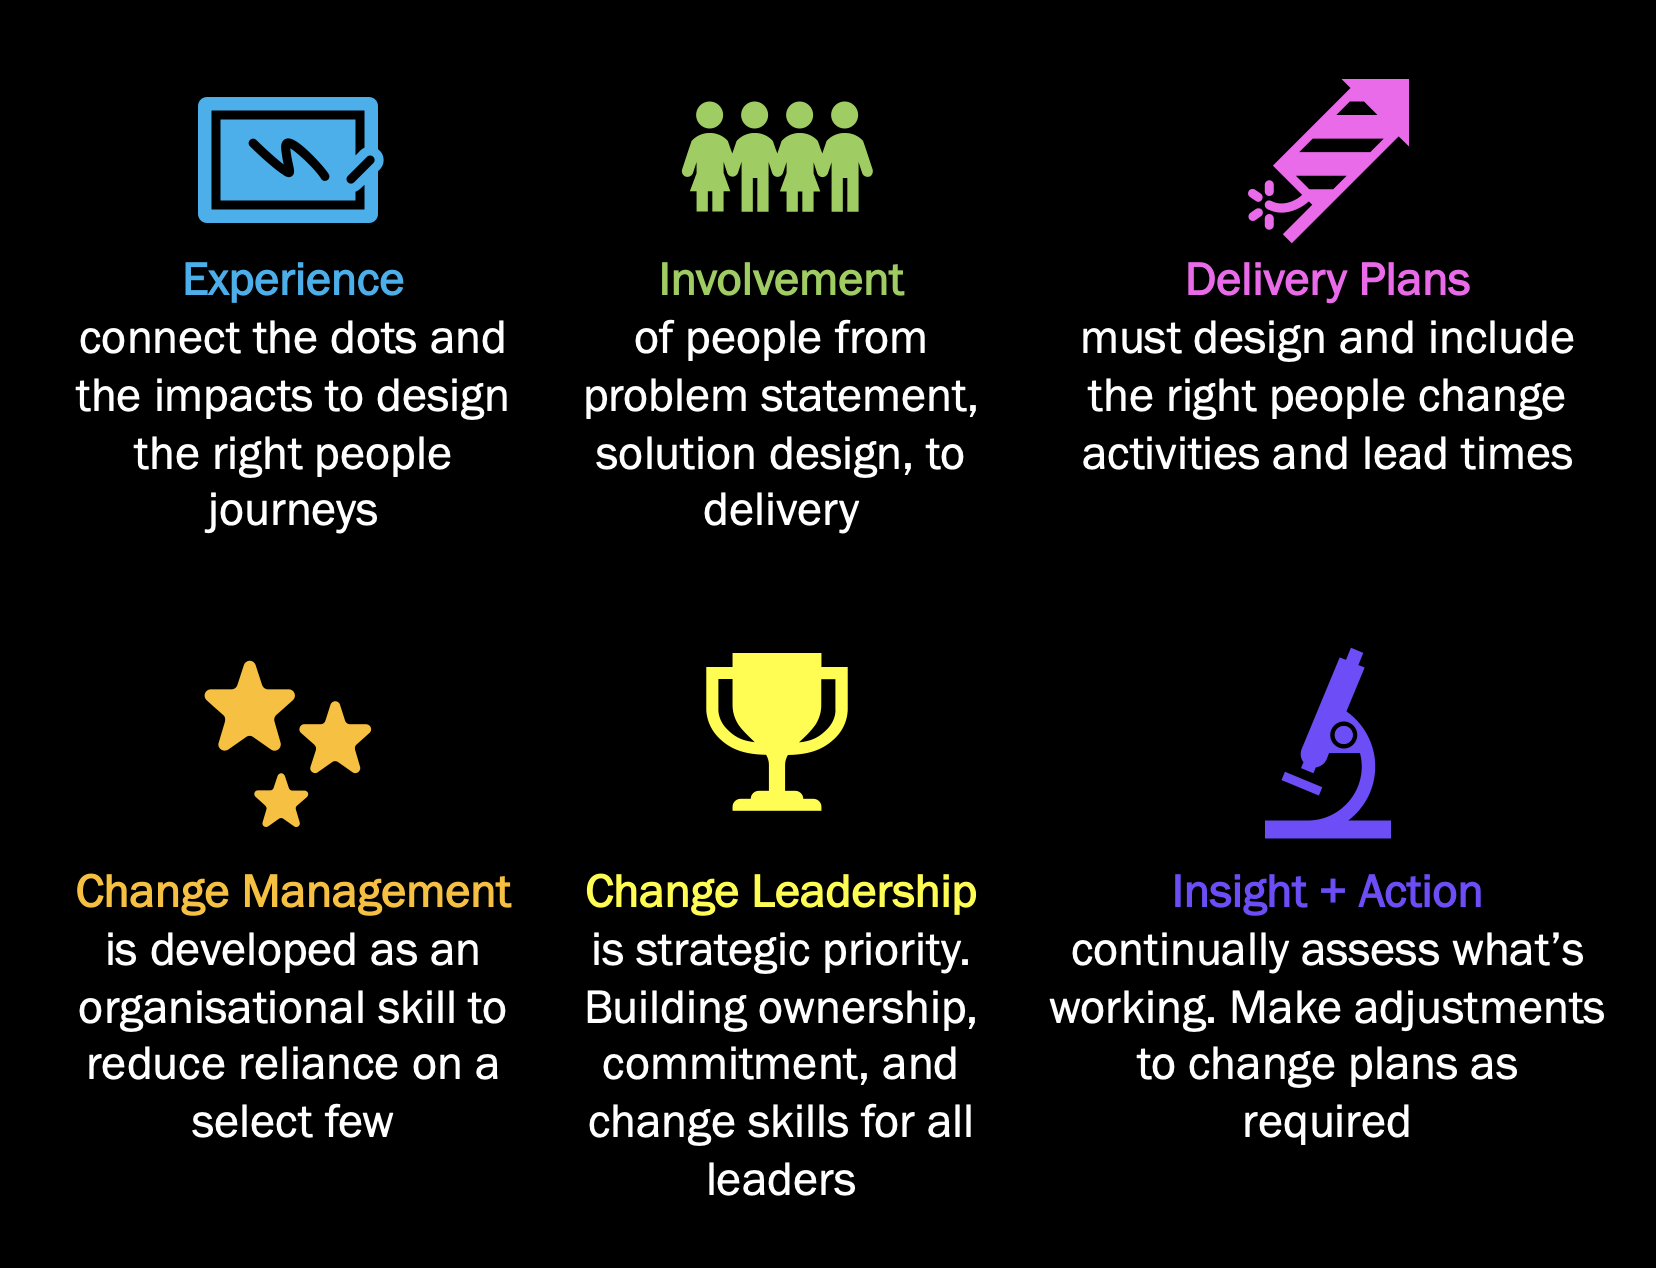 Our 6 change principles